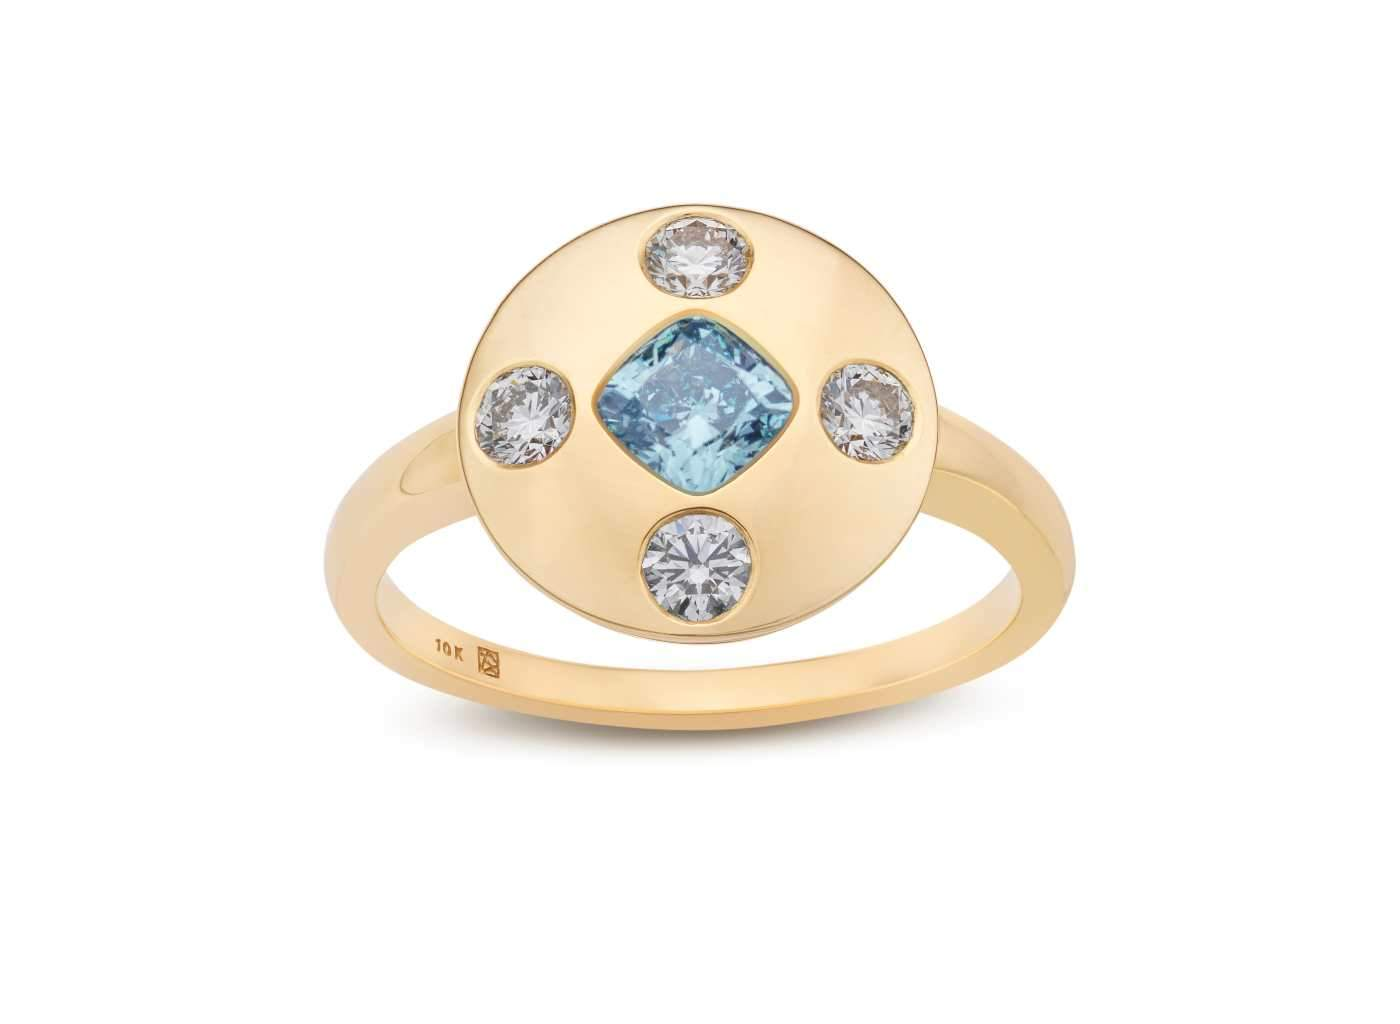 Front view of Muli Stone Signet Ring with blue and white diamonds